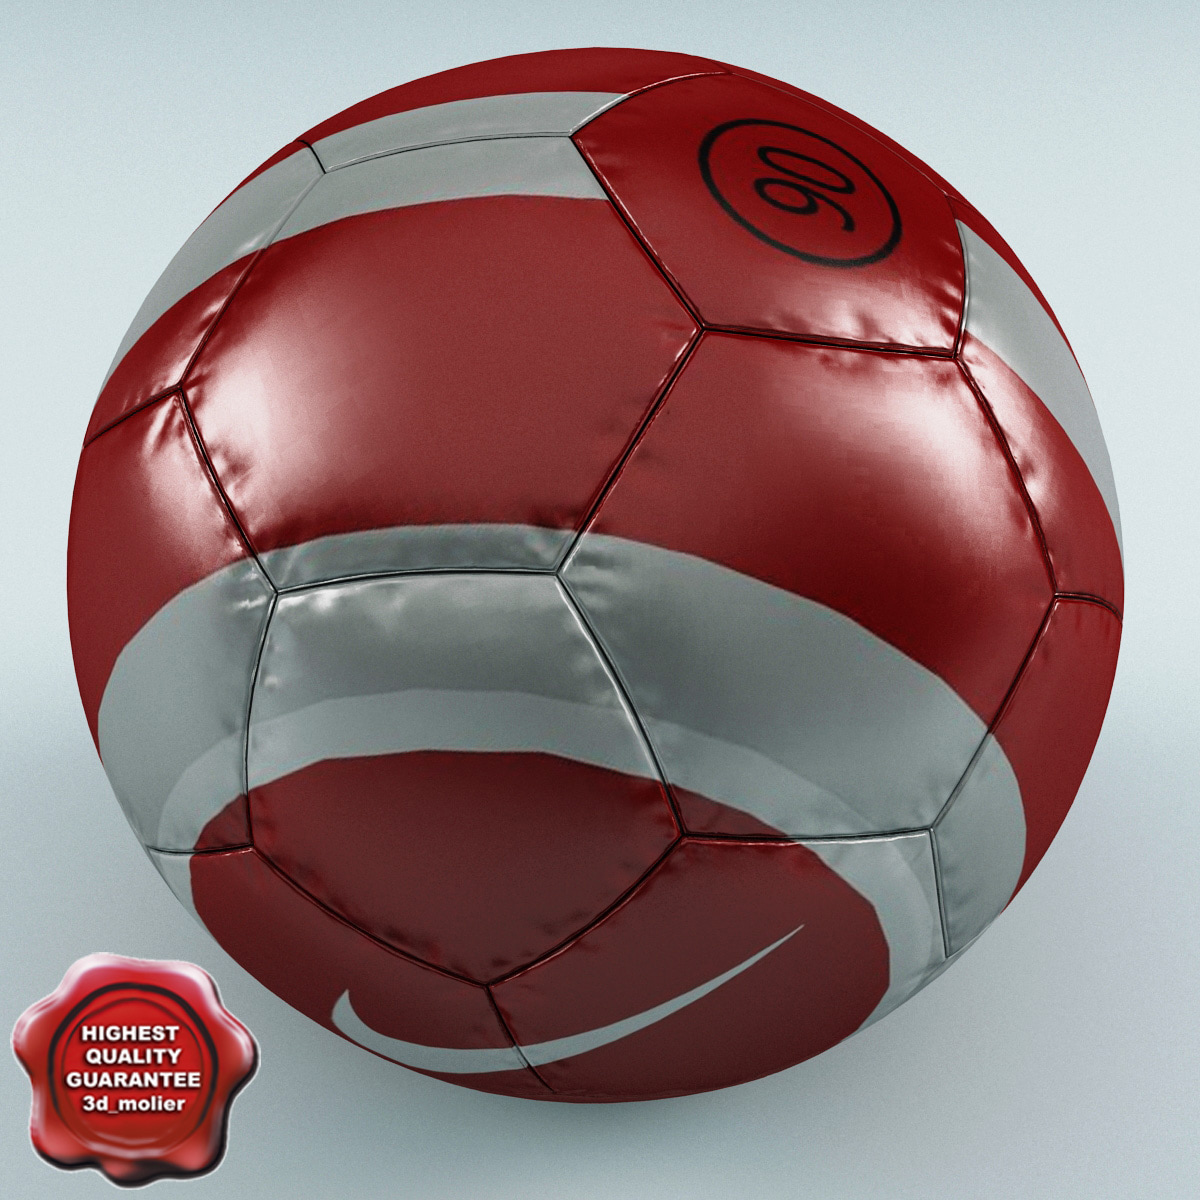 soccer ball of real leather for world cup championship 2006: